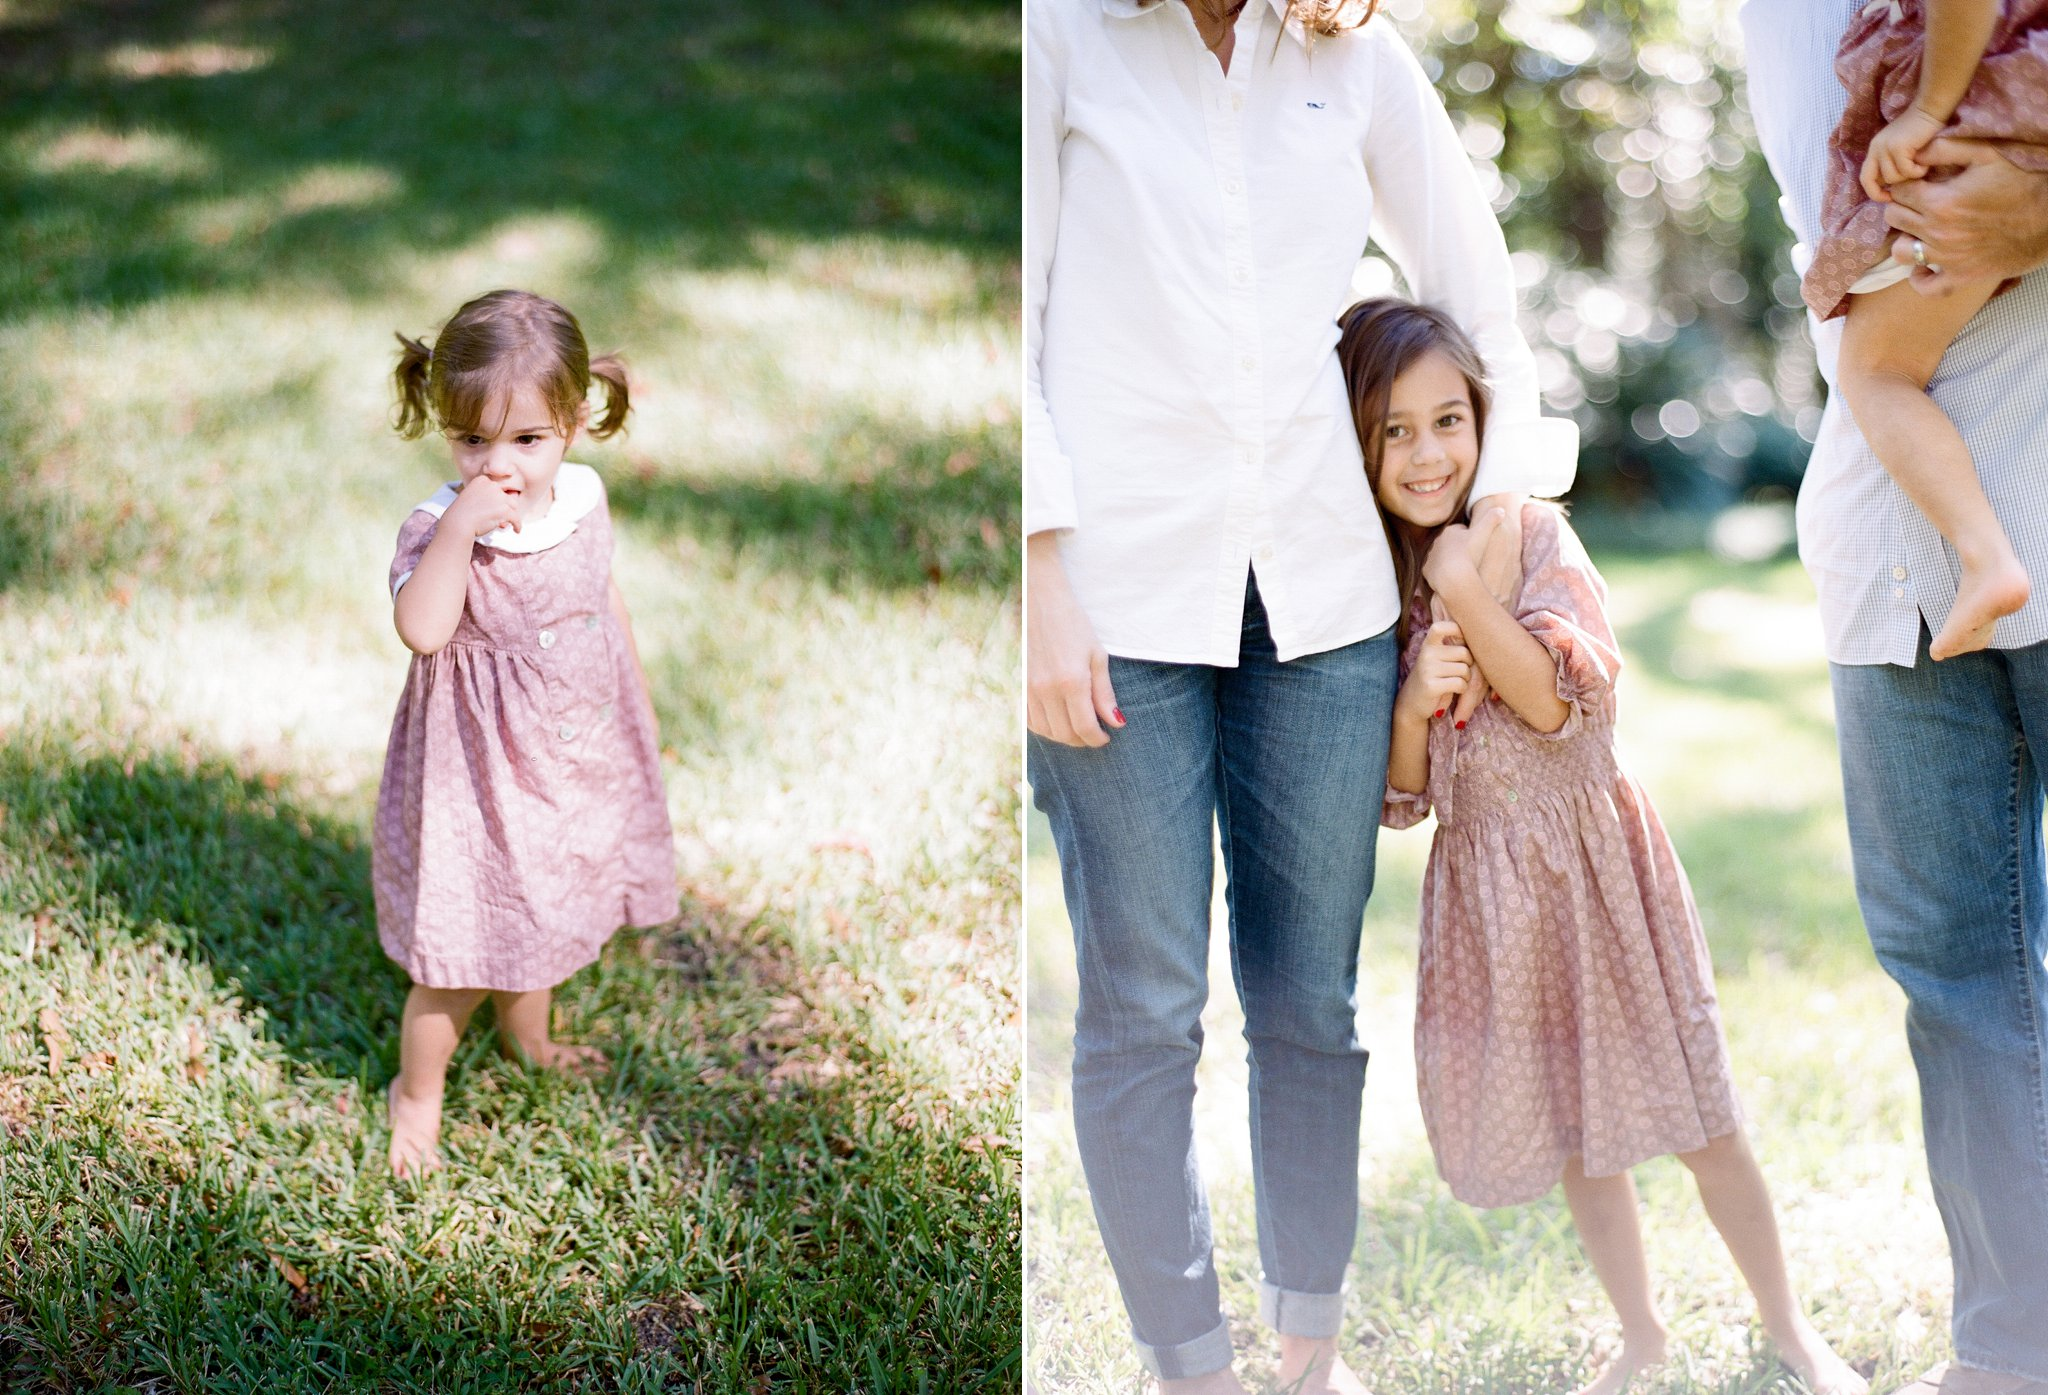 tallahassee family photographer shannon griffin photography_0044.jpg